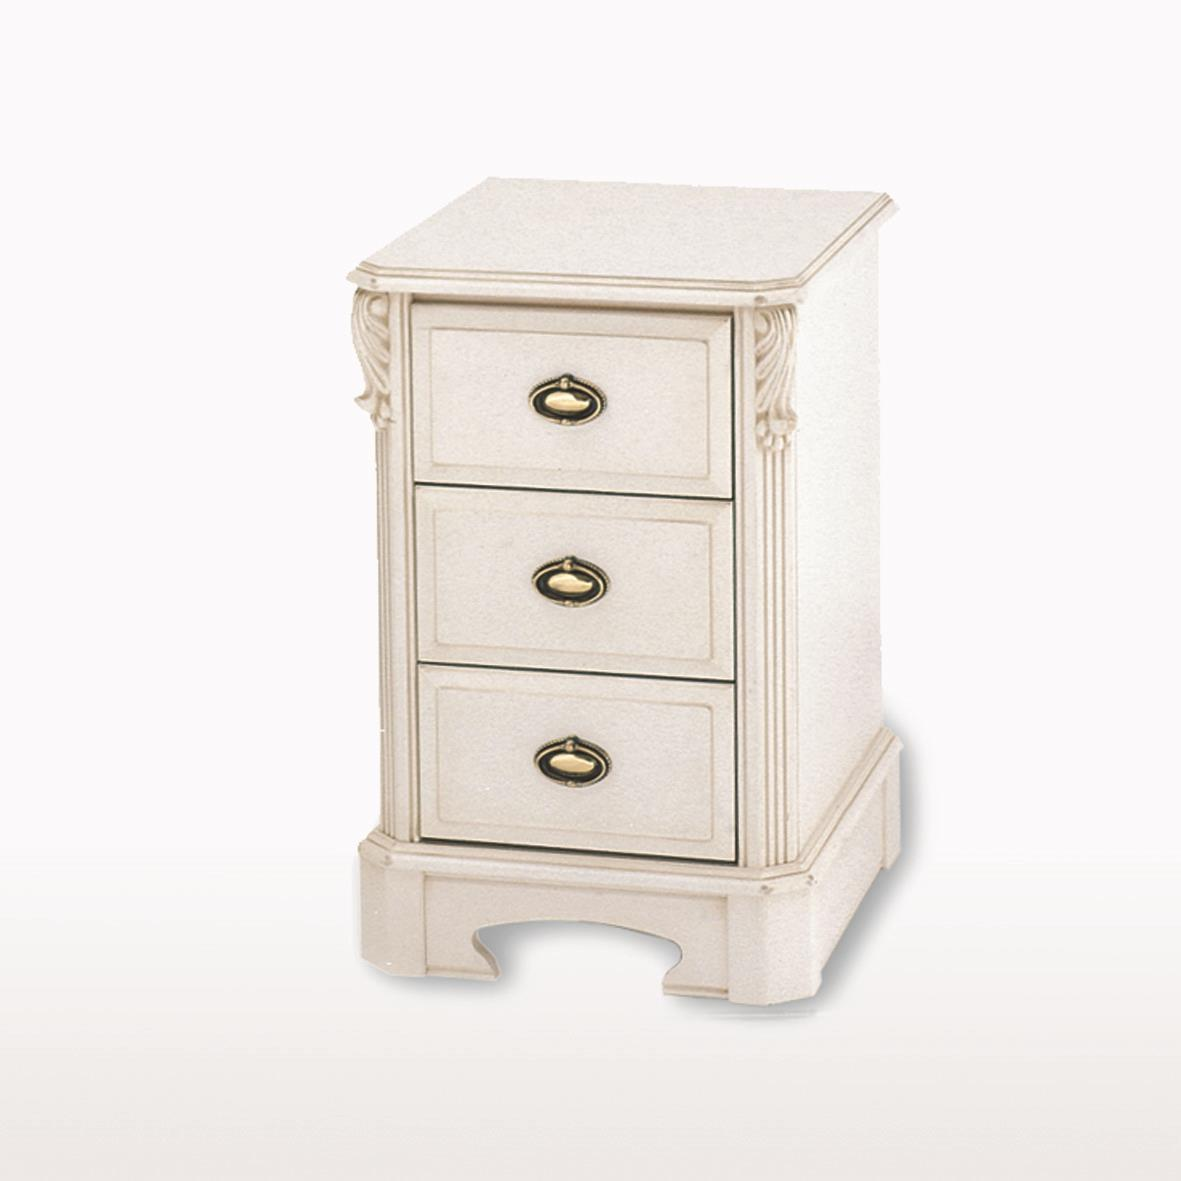 Amore' - Small 3 Drawer Bedside Chest - ABJ213